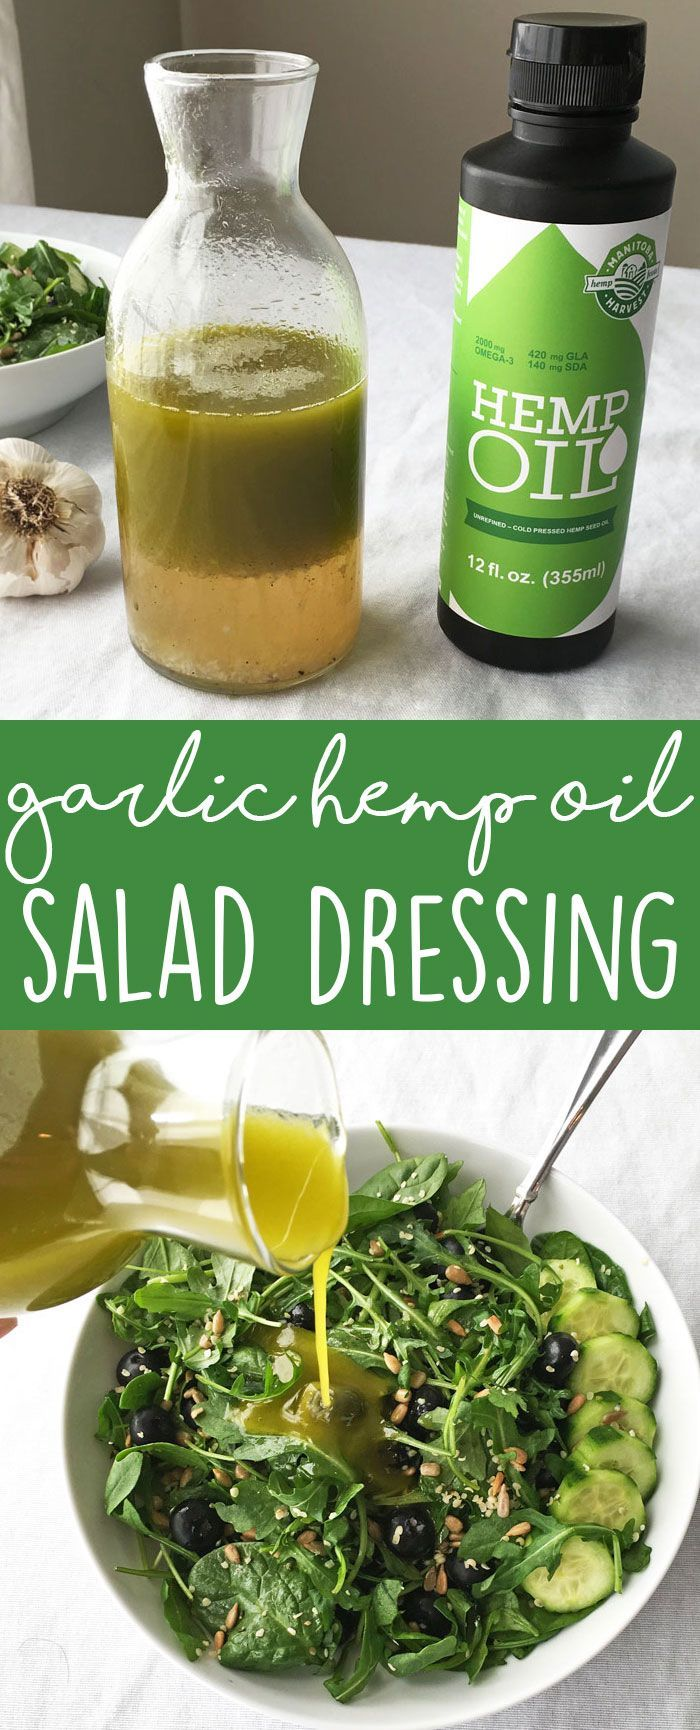 Drizzle delicious garlic hemp oil salad dressing onto your favorite salad. This dressing is vegan and full of health benefits.